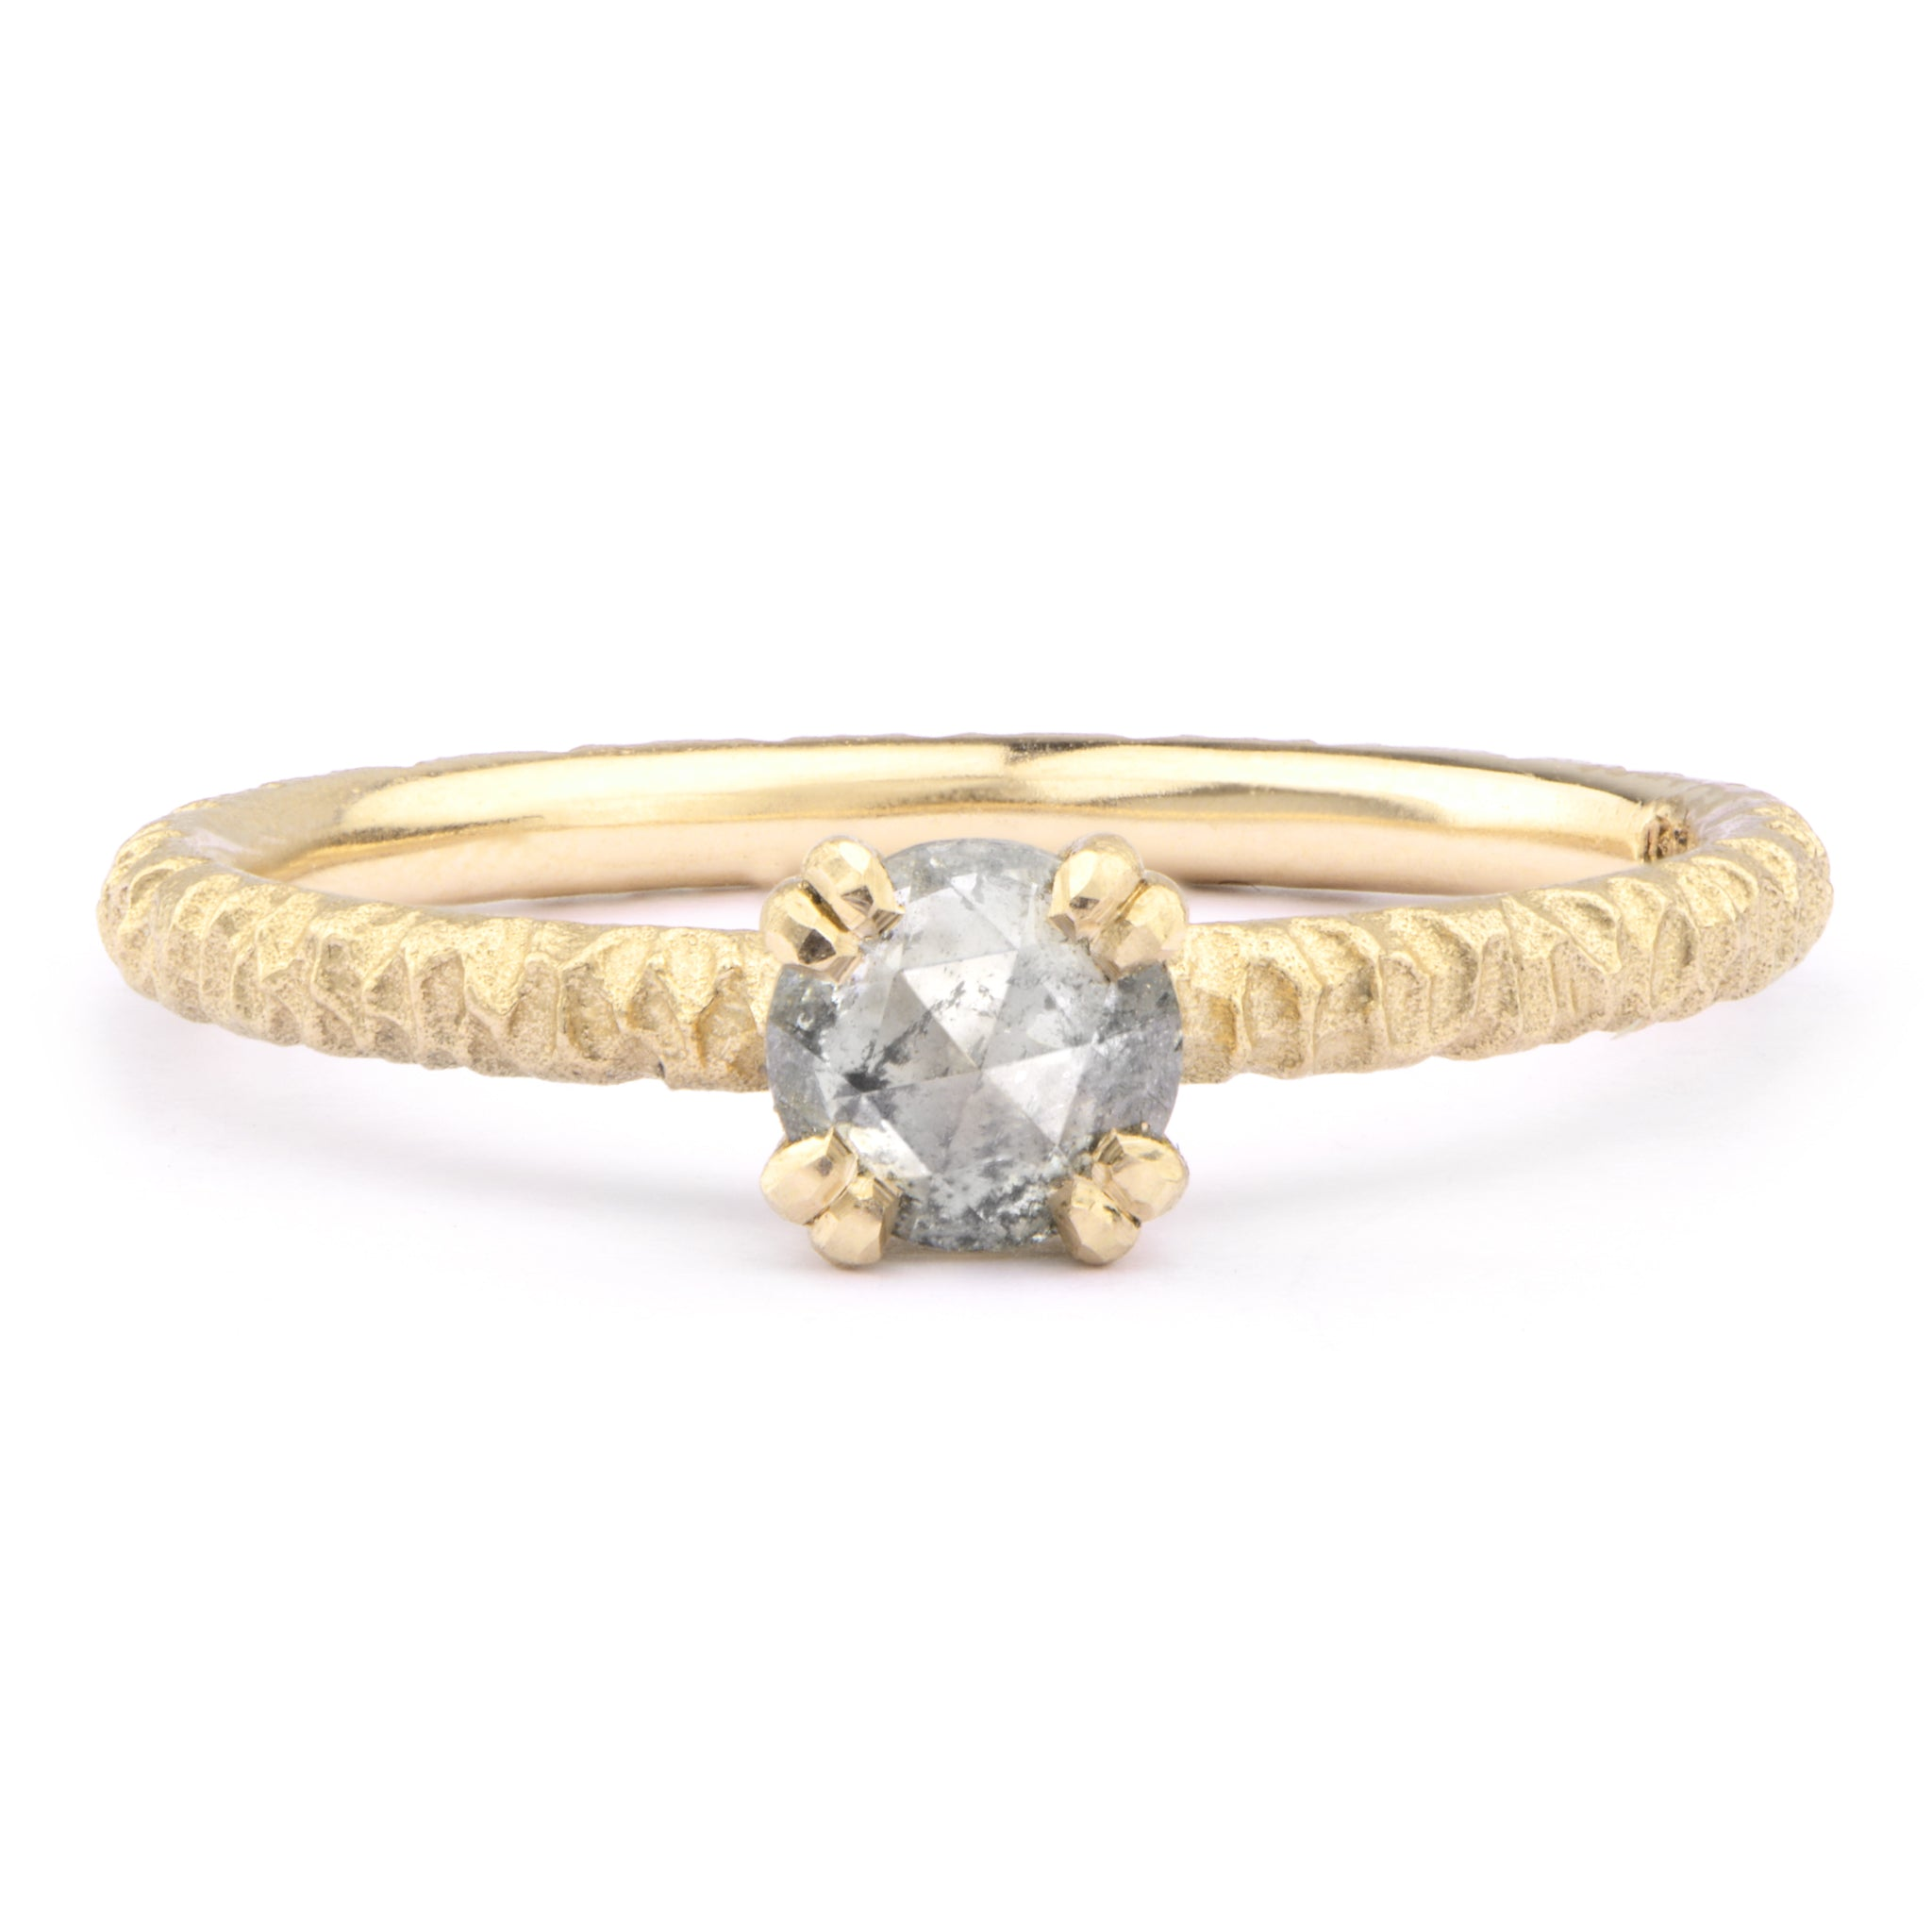 5mm Salt and Pepper Diamond and 18ct Yellow Gold Solitaire - James Newman Jewellery